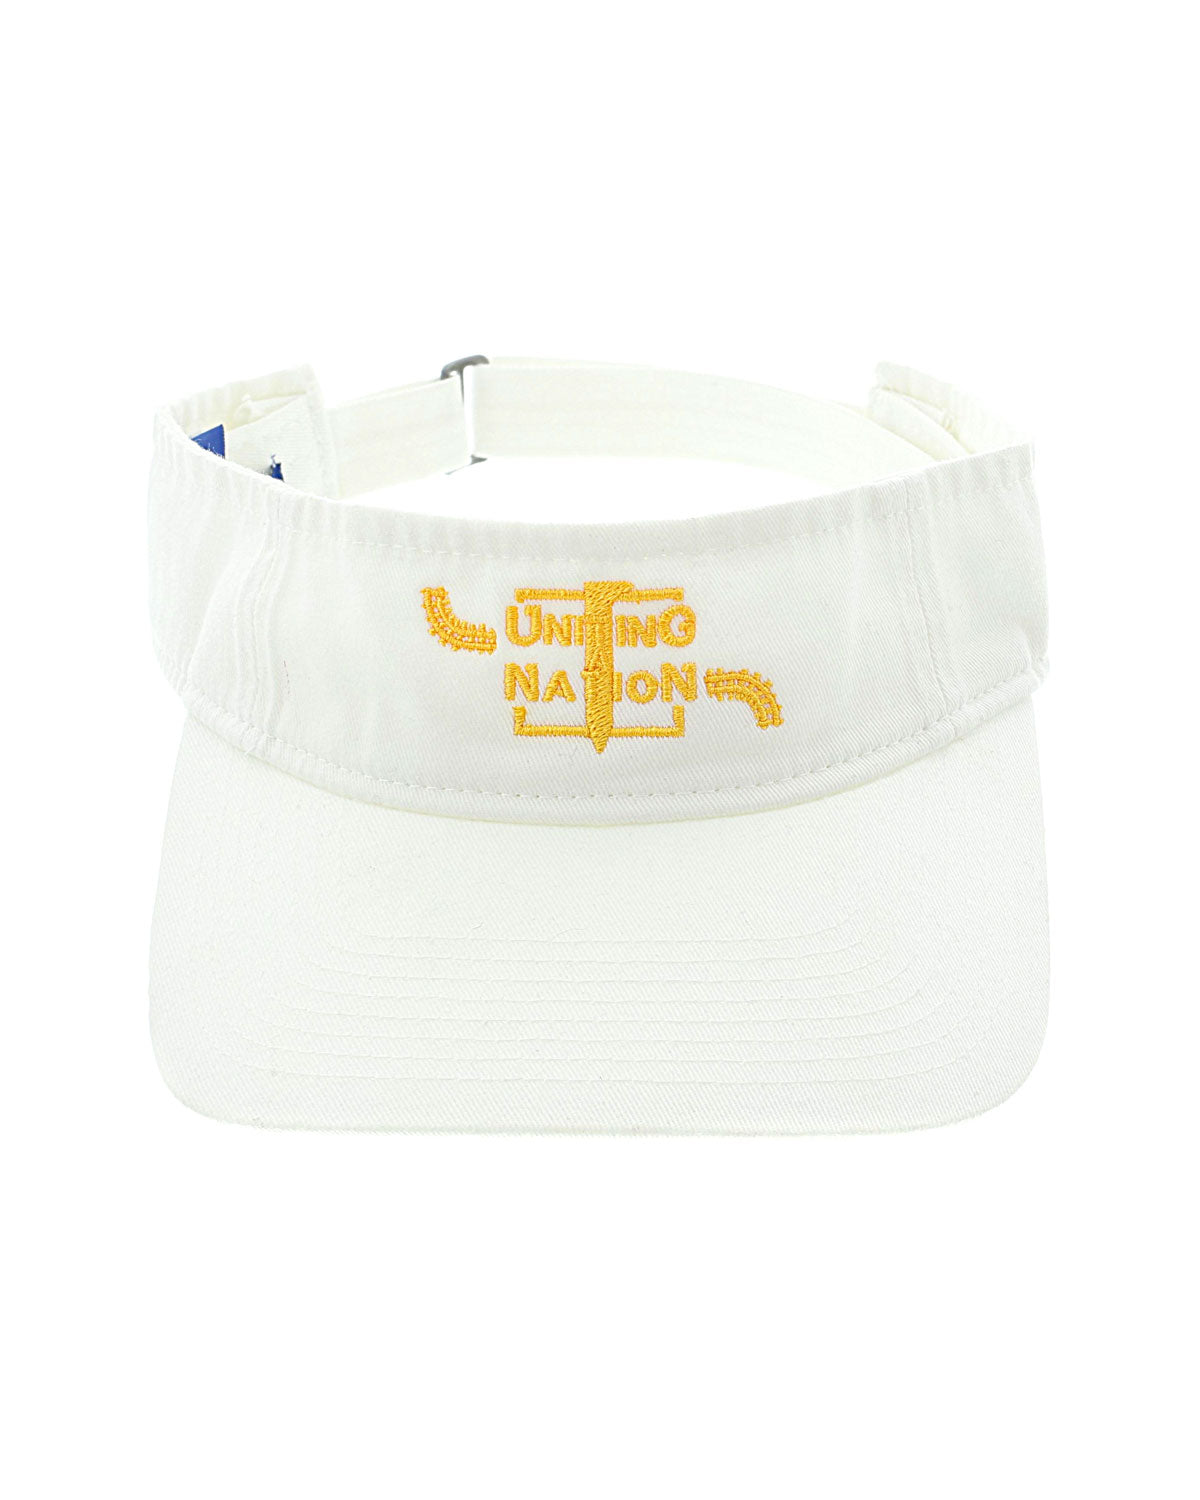 Uniting a Nation Visor